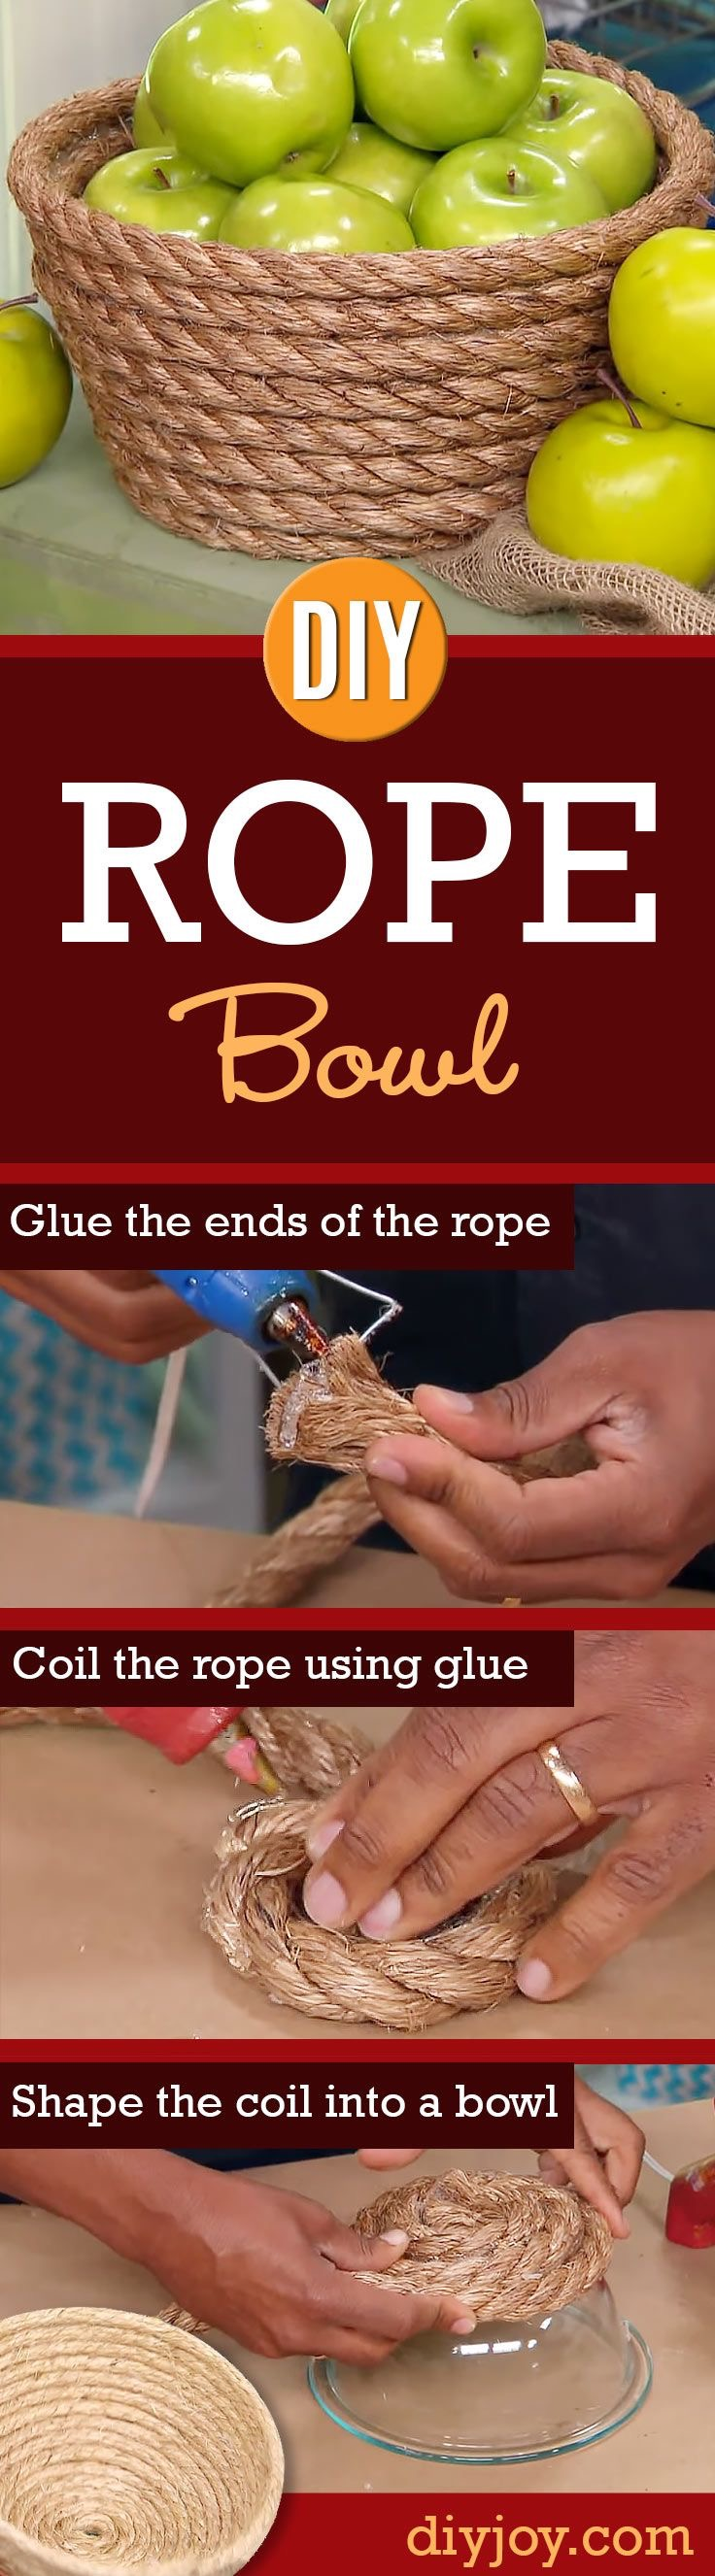 Diy rope bowl easy do it yourself and cost saving way to make a easy home decor projects and cheap diy crafts ideas that make cool homemade gifts diy rope bowl how to and step by step instructions solutioingenieria Image collections